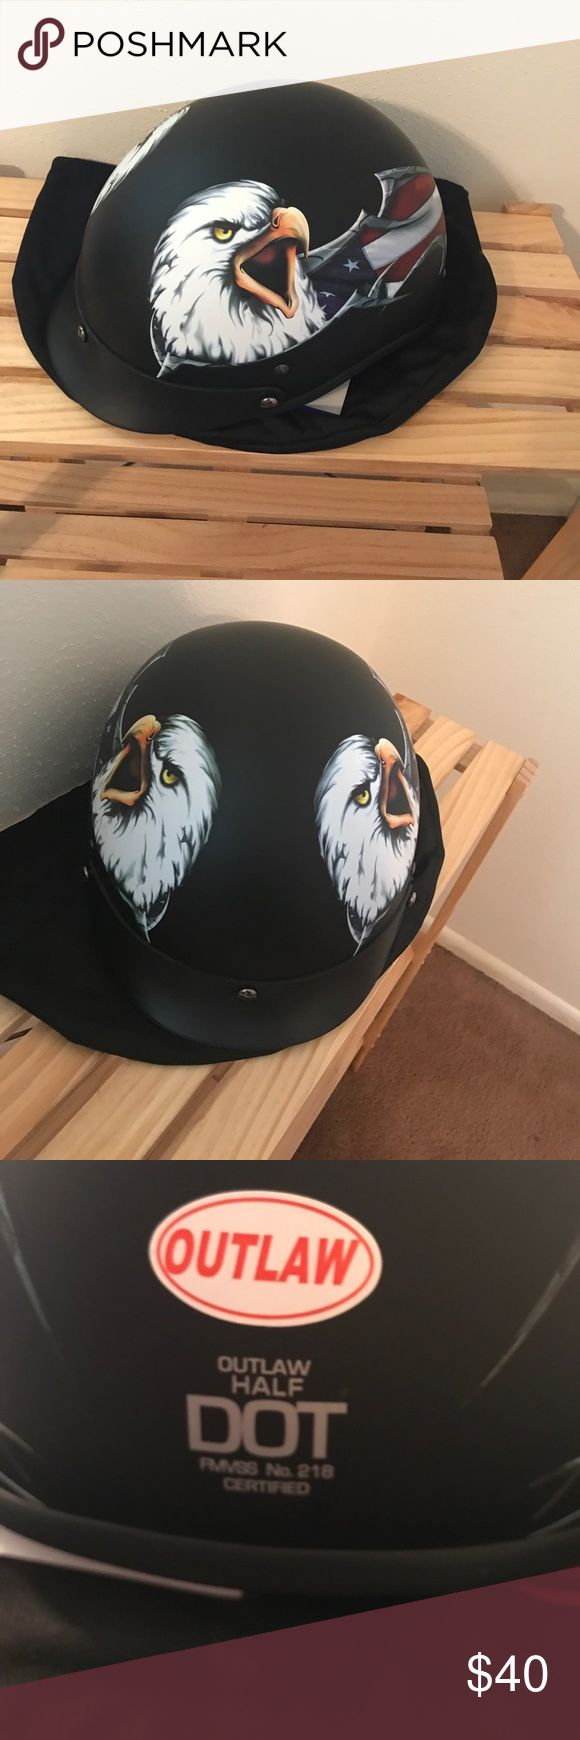 Men's motorcycle half helmet New never used DOT approved men's large motorcycle half helmet. Flat black with eagle And American flag. Outlaw is the brand name. Bought for a Father's Day and didn't fit. Excellent condition no rips, tears, scratches. Has bag but no box. Outlaw Other